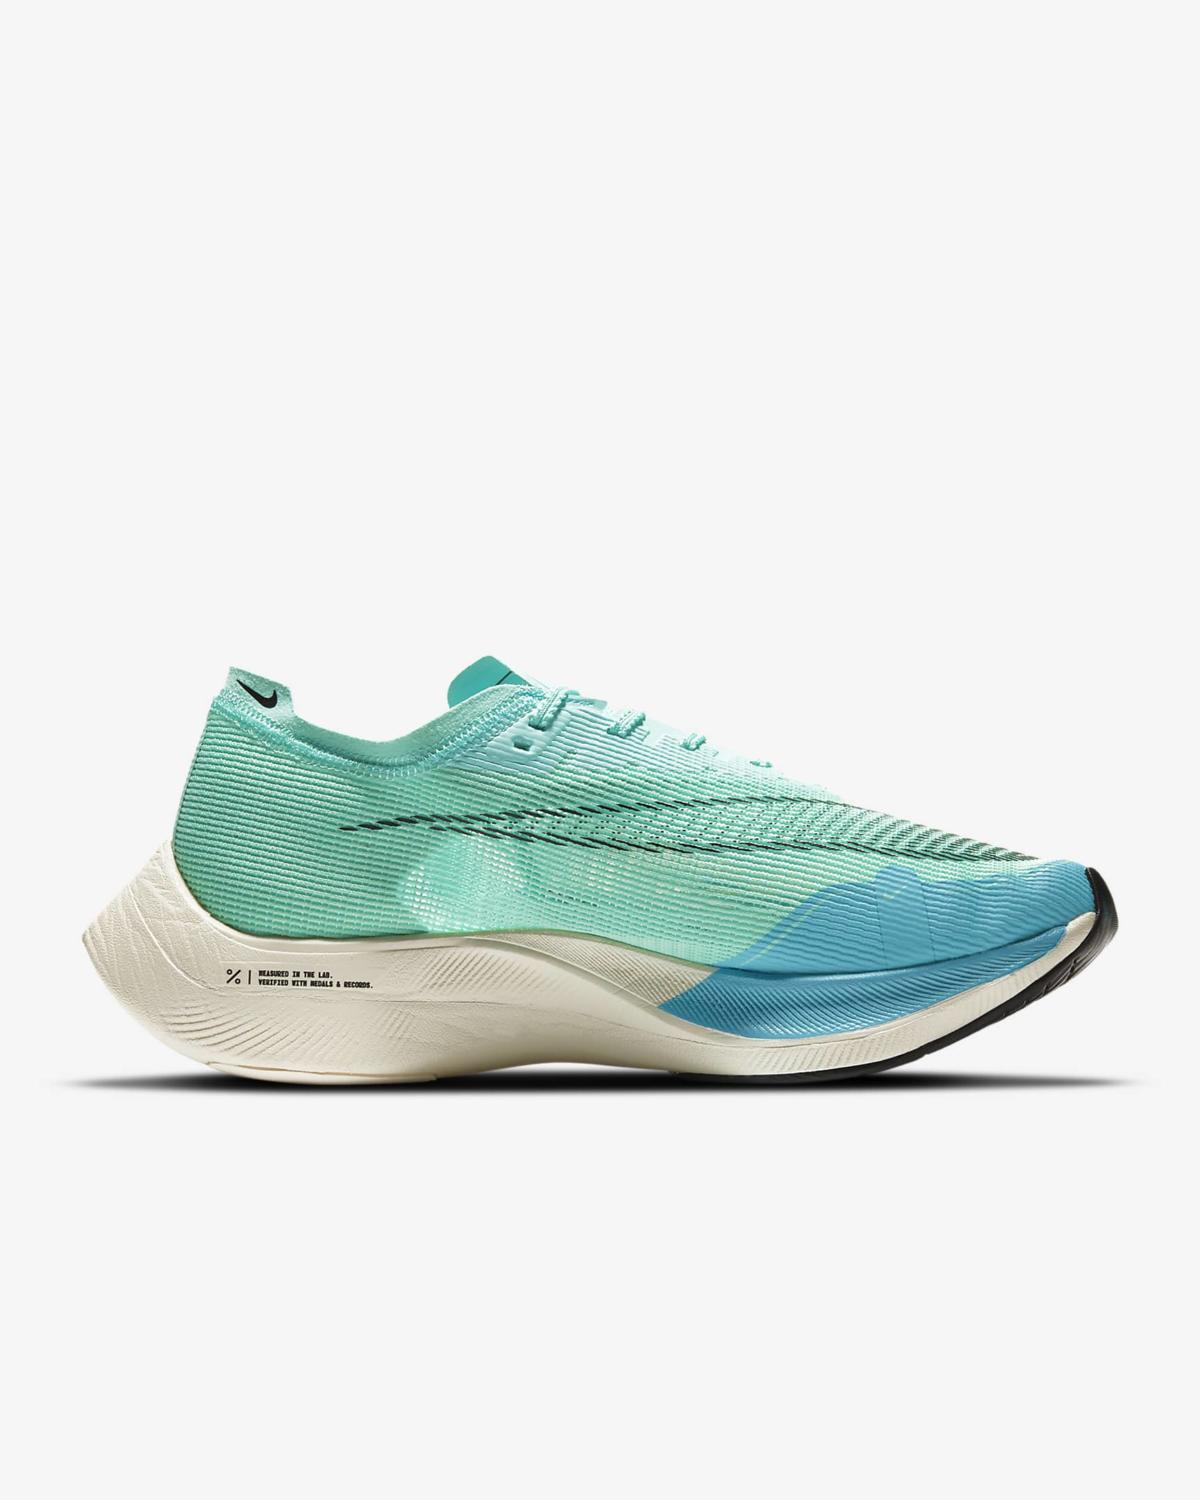 zoomx-vaporfly-next-2-racing-shoe-D4ntS0 (1)